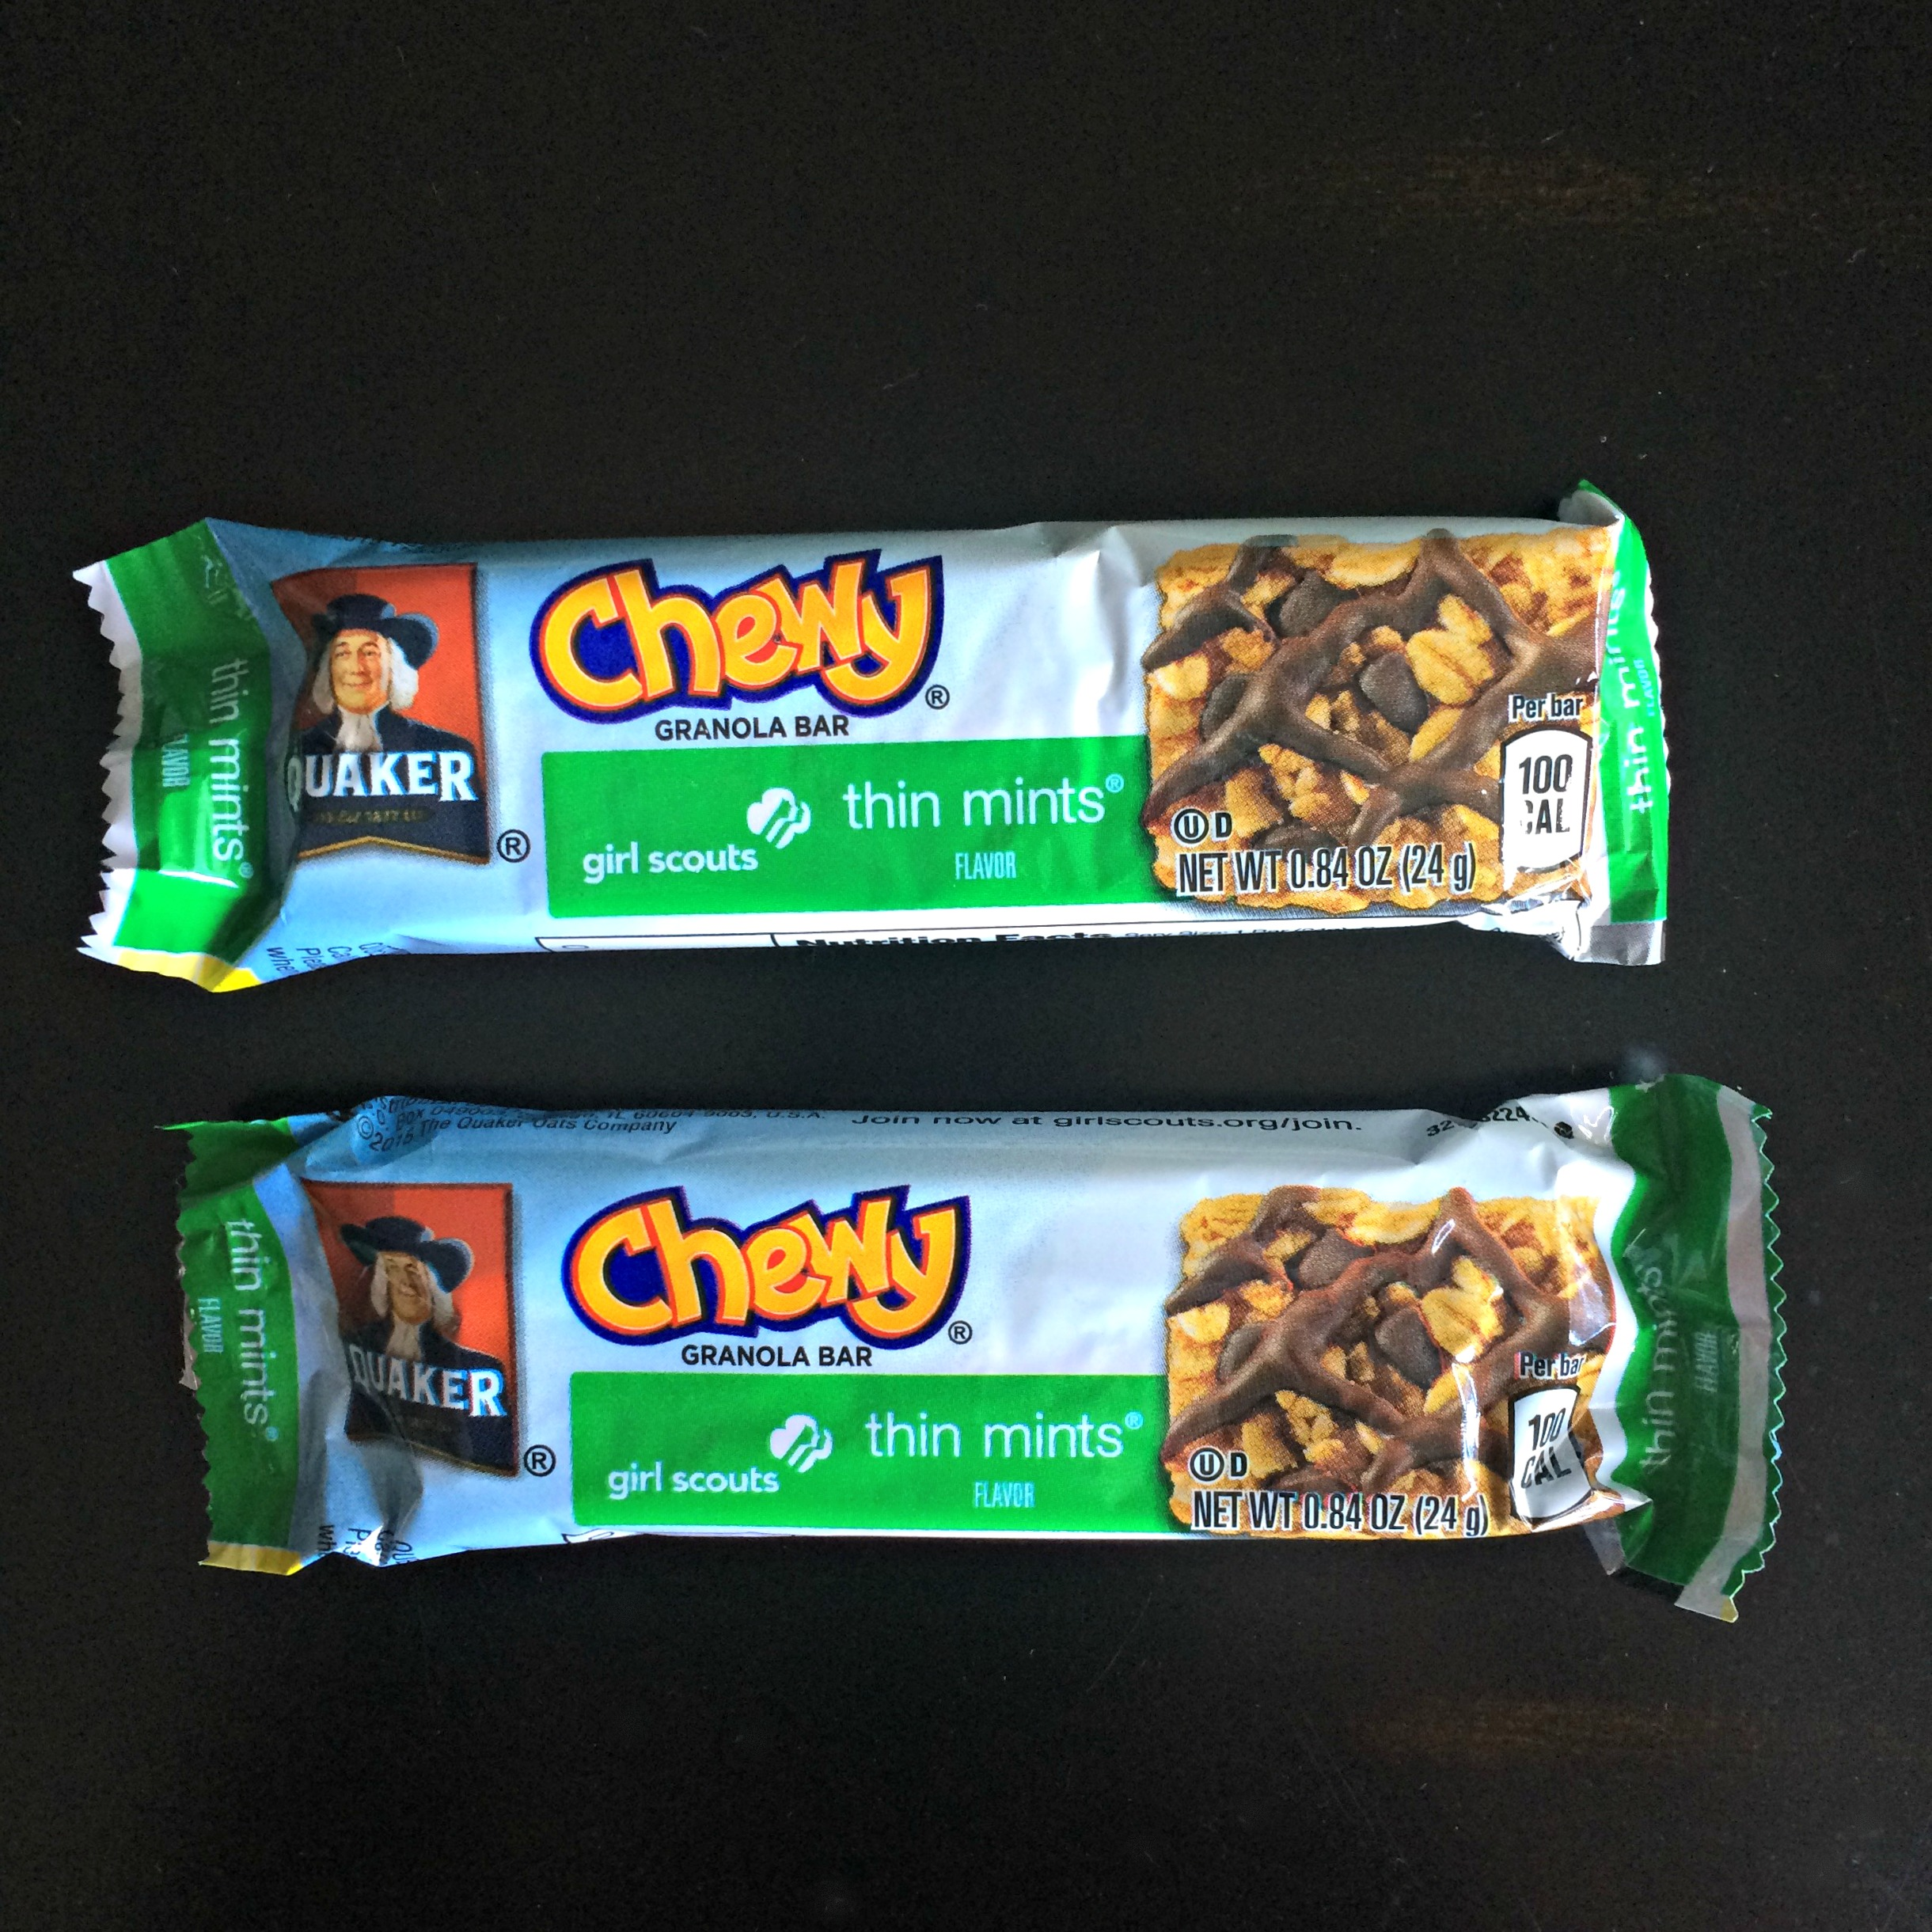 Chewy granola bar thin mints